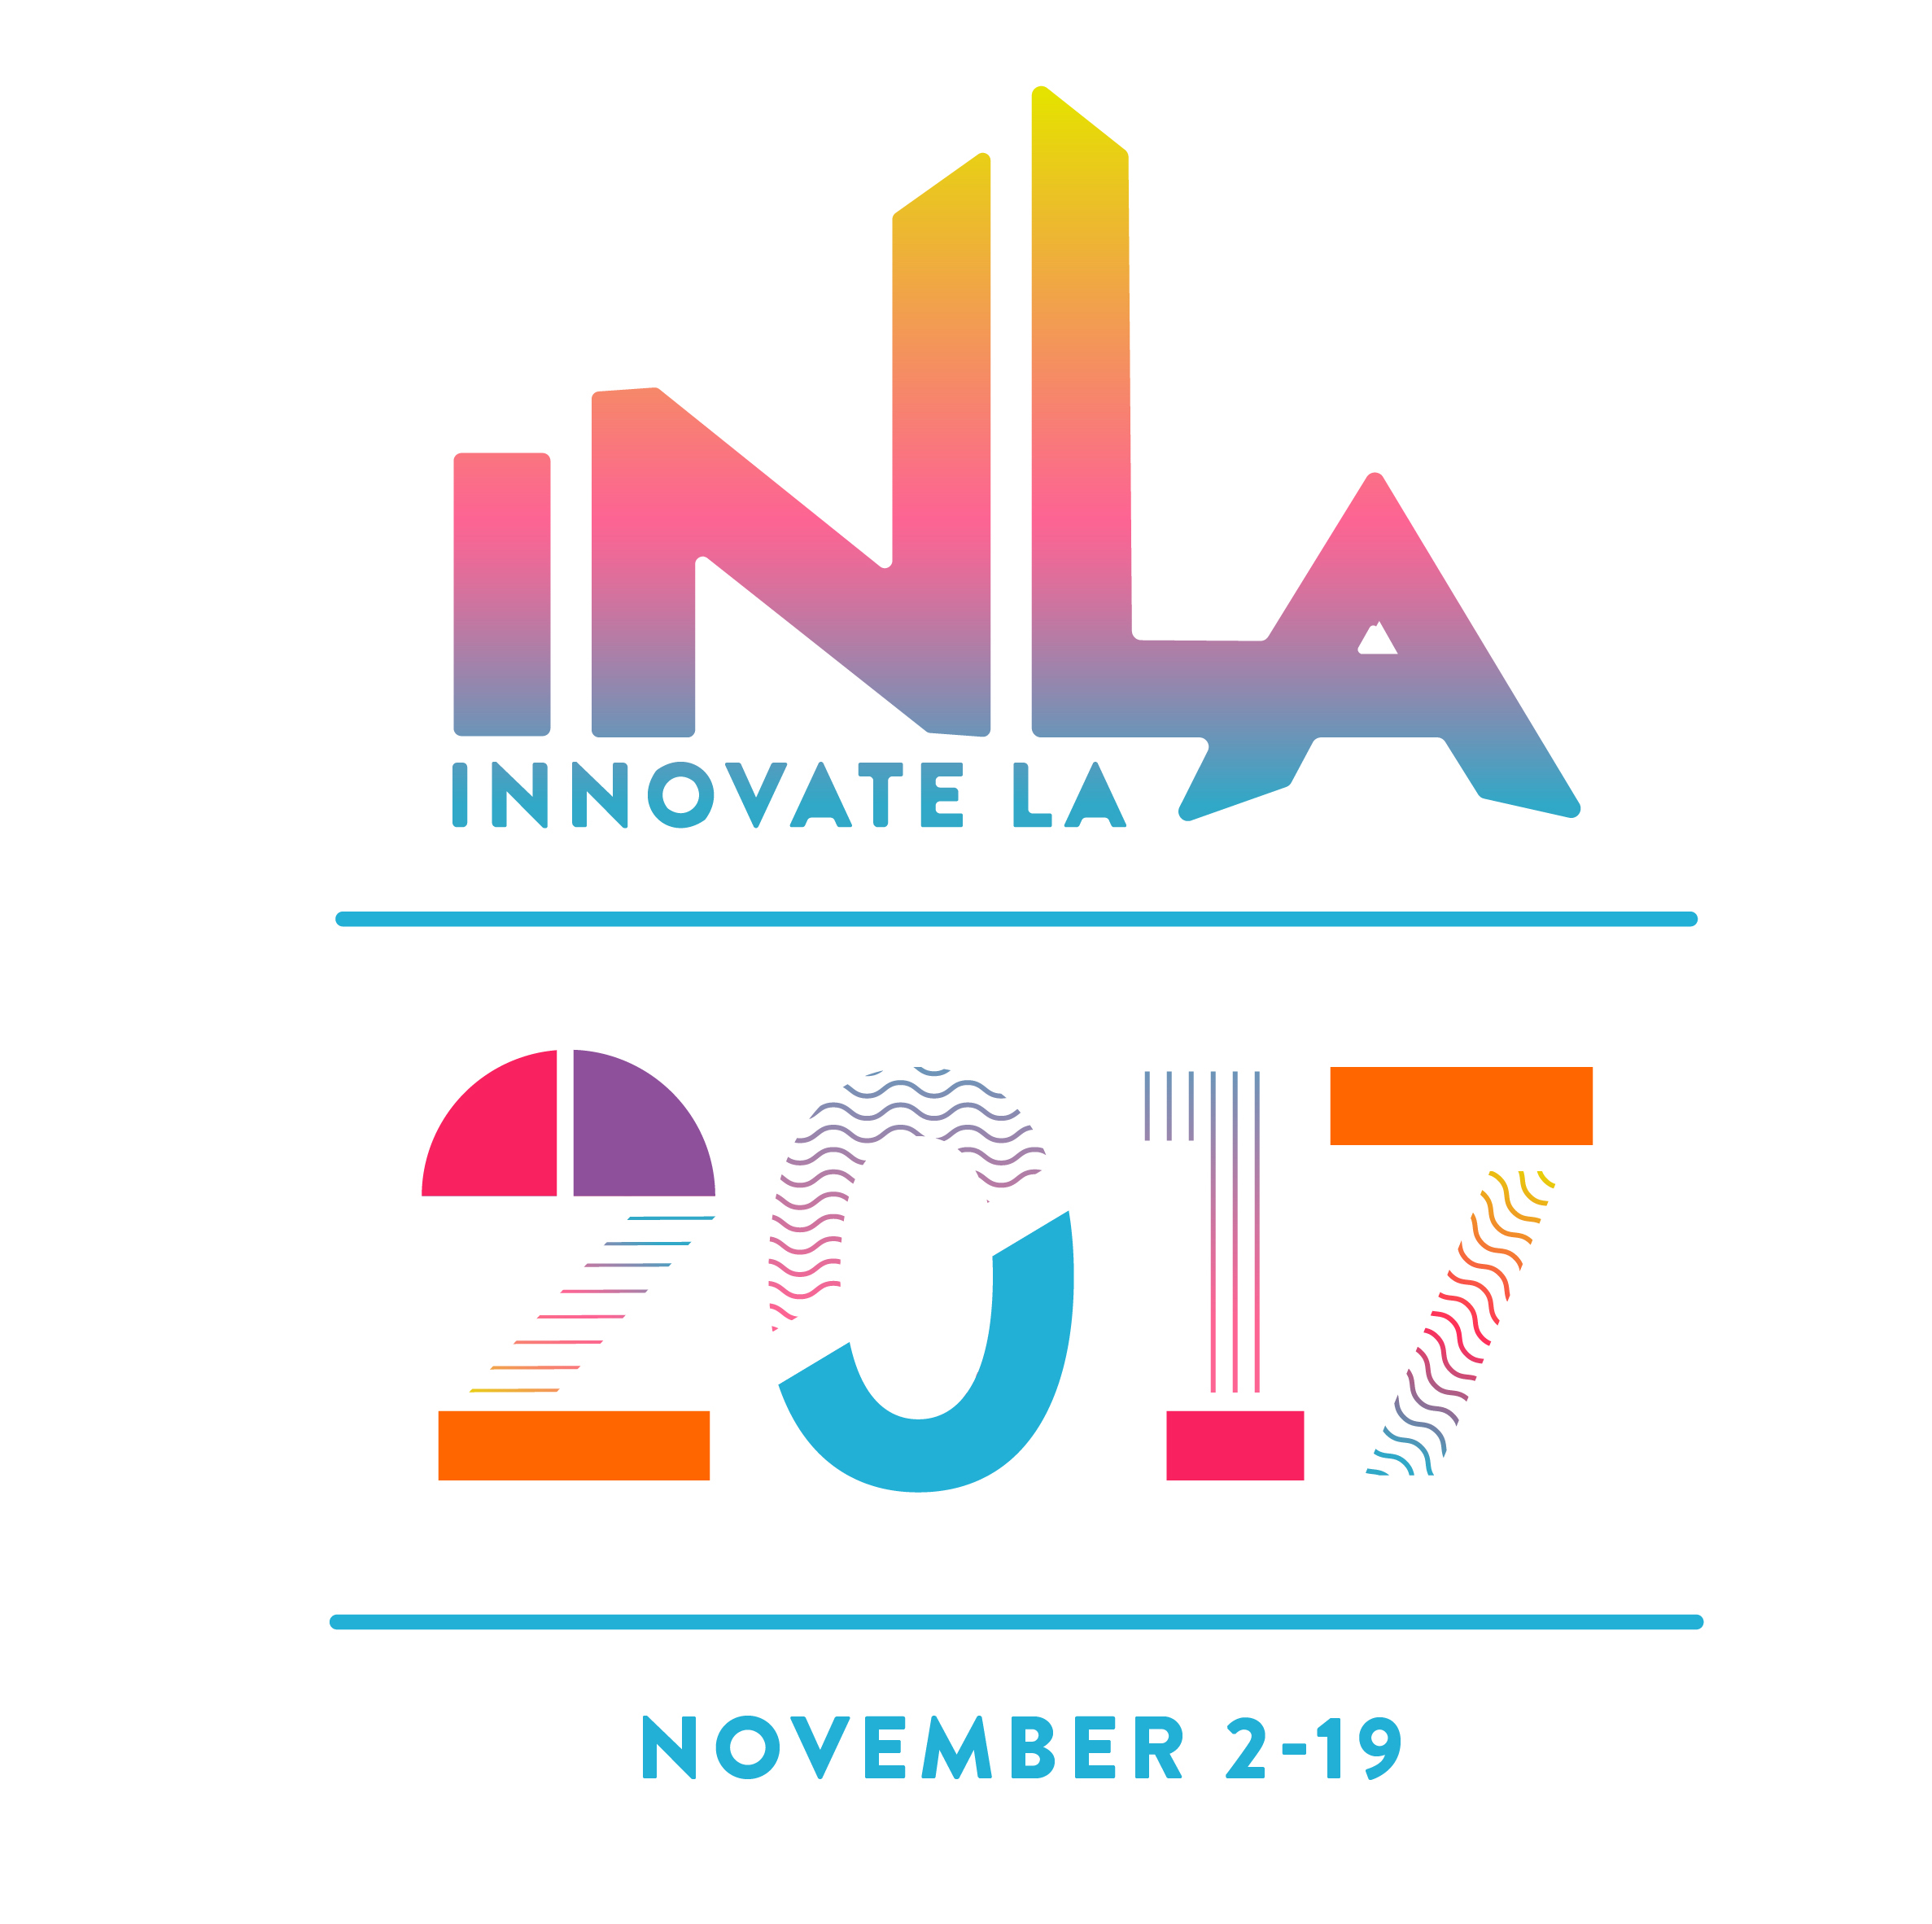 InnovateLA Kicks Off Nov. 2nd with 100+ Events You Can Attend